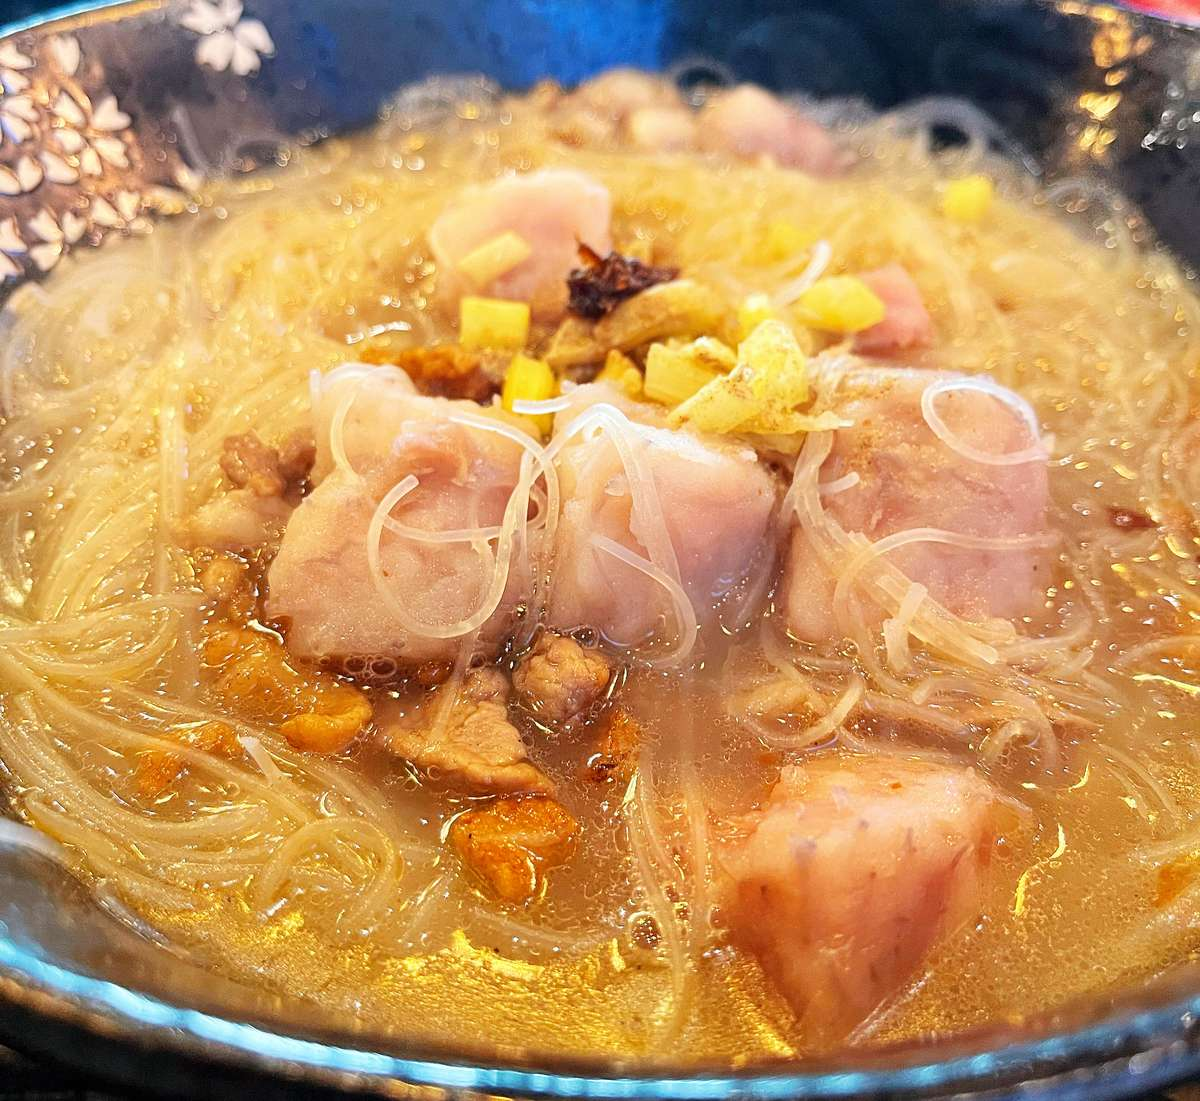 Taro Rice Noodle Soup (芋頭米粉湯) - Available only on Friday, Saturday and Sunday